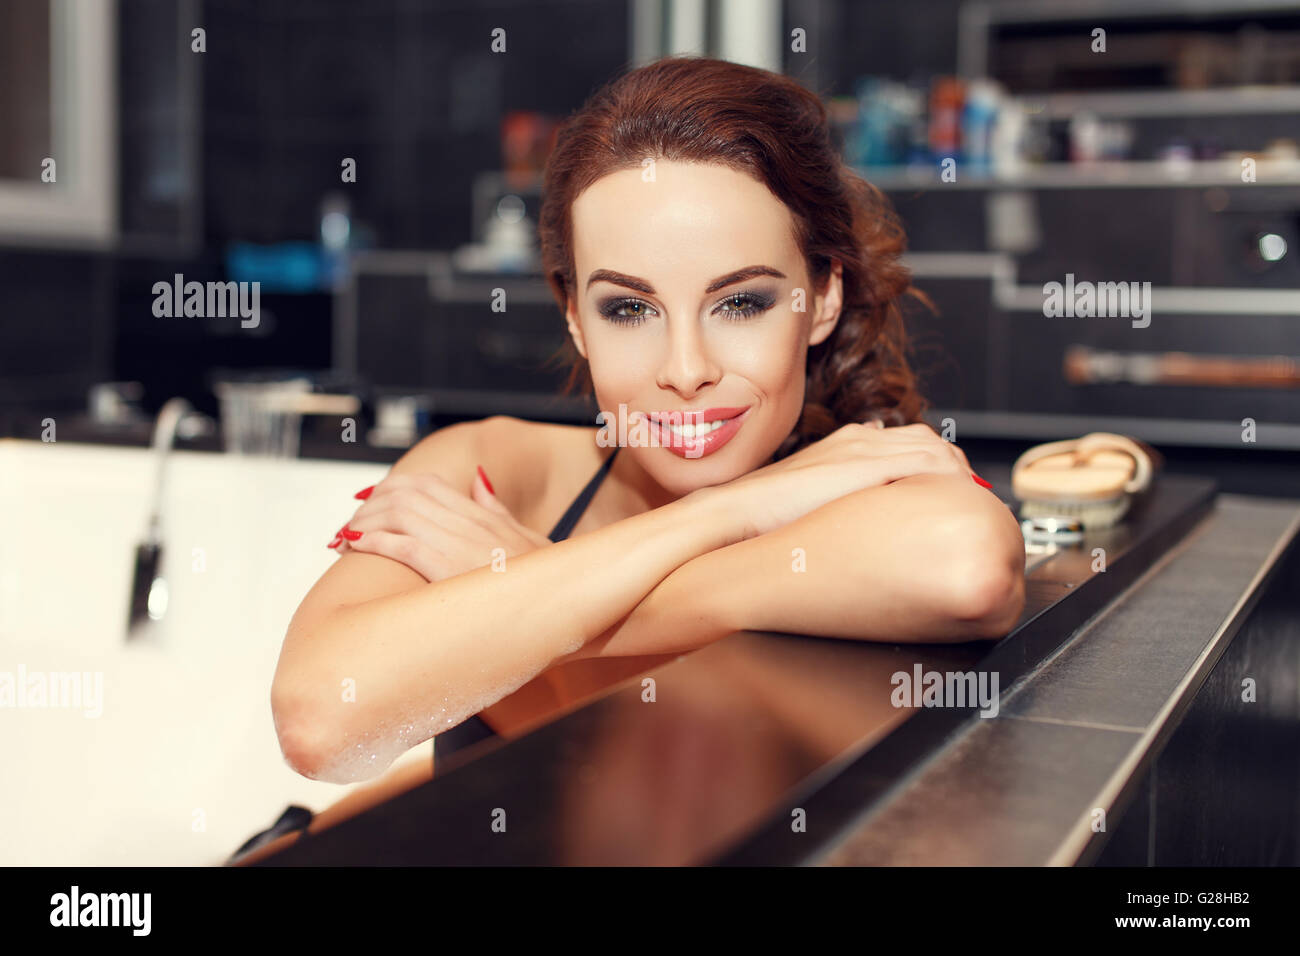 Woman elbowing on the edge of jacuzzi in bathroom - Stock Image